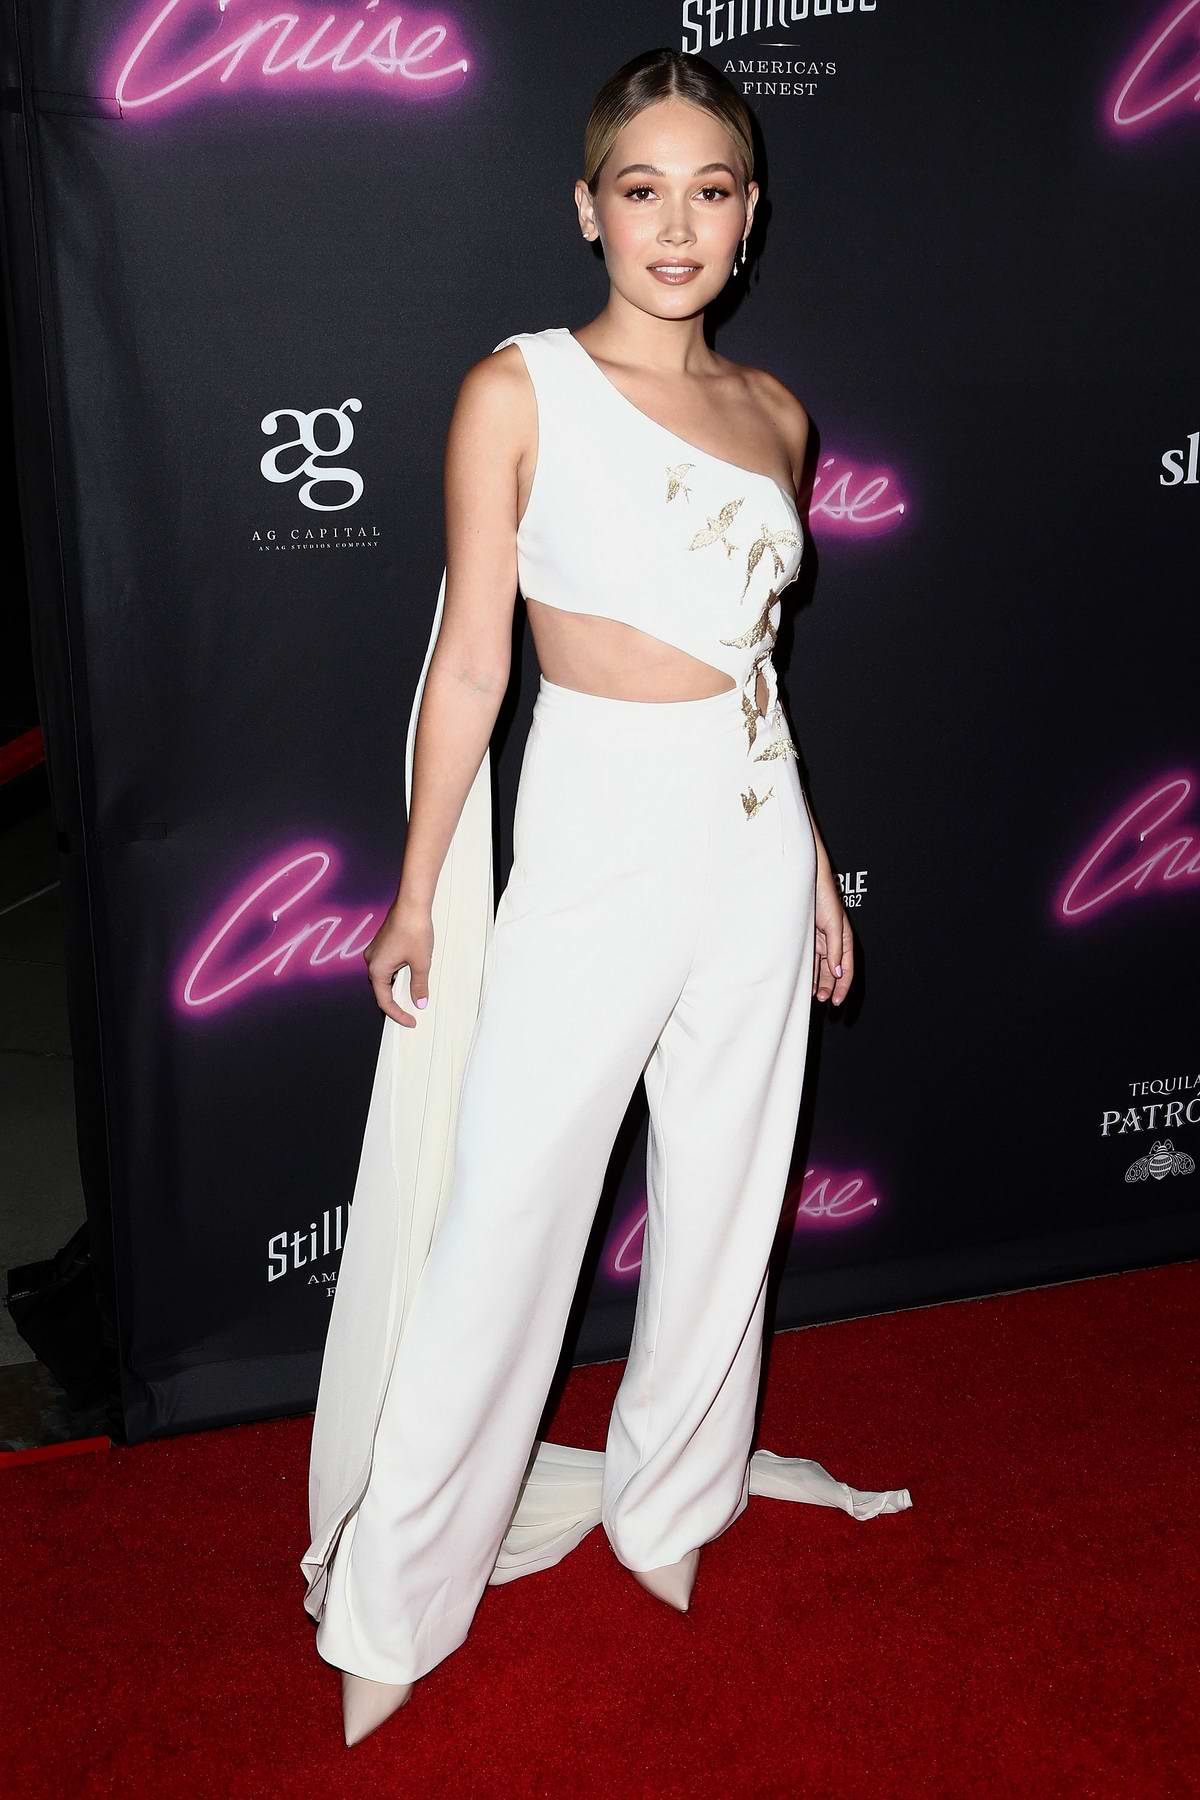 Kelli Berglund attends LA Premiere for 'Cruise' at Arclight Hollywood in Los Angeles